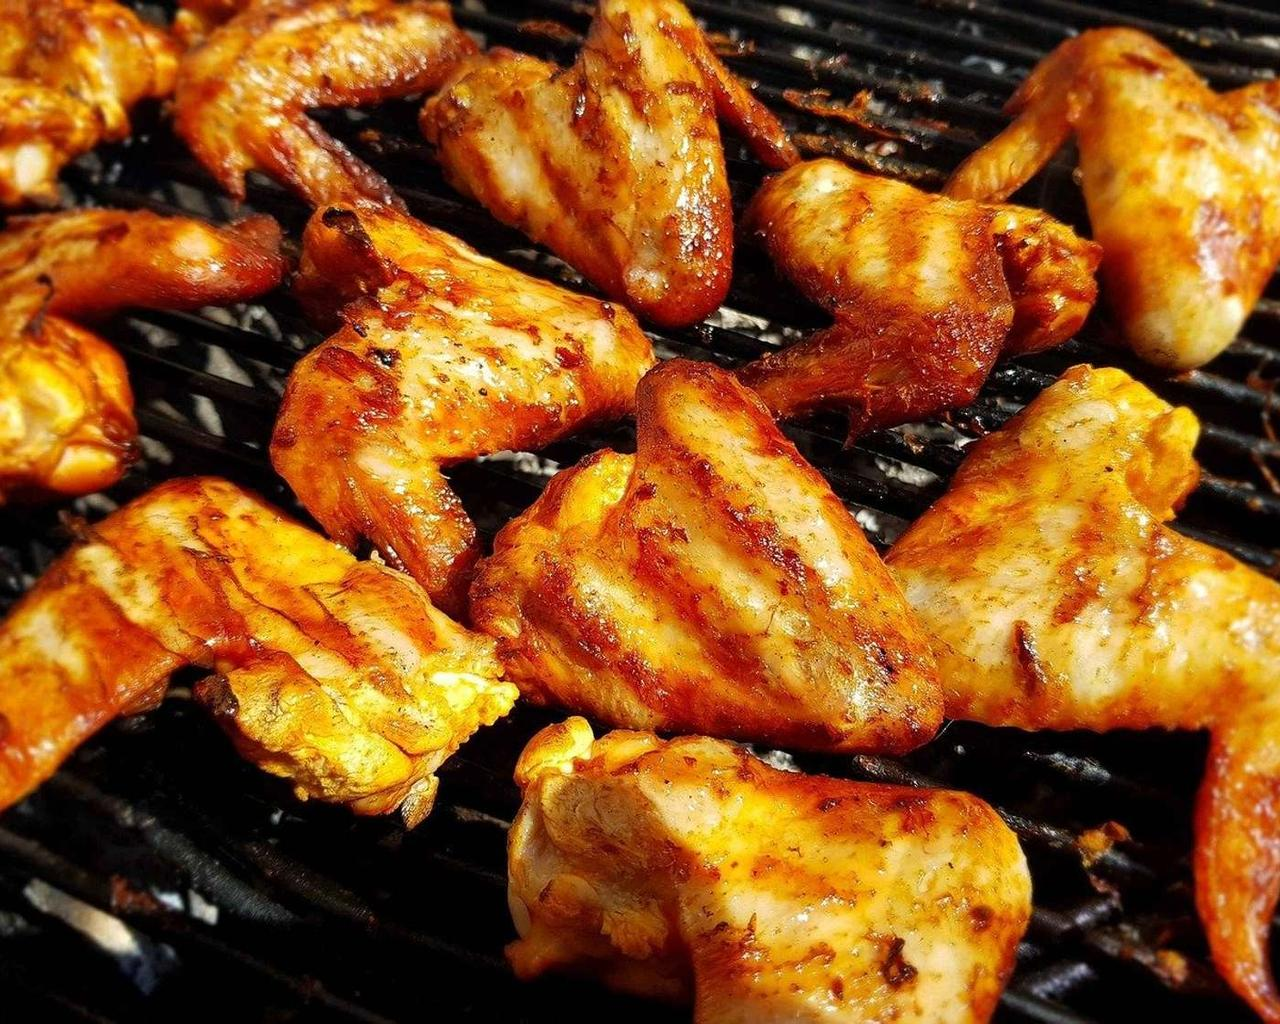 China Detects Coronavirus on Imported Chicken Meat and Seafood — Shall We Ban Imported Foods?